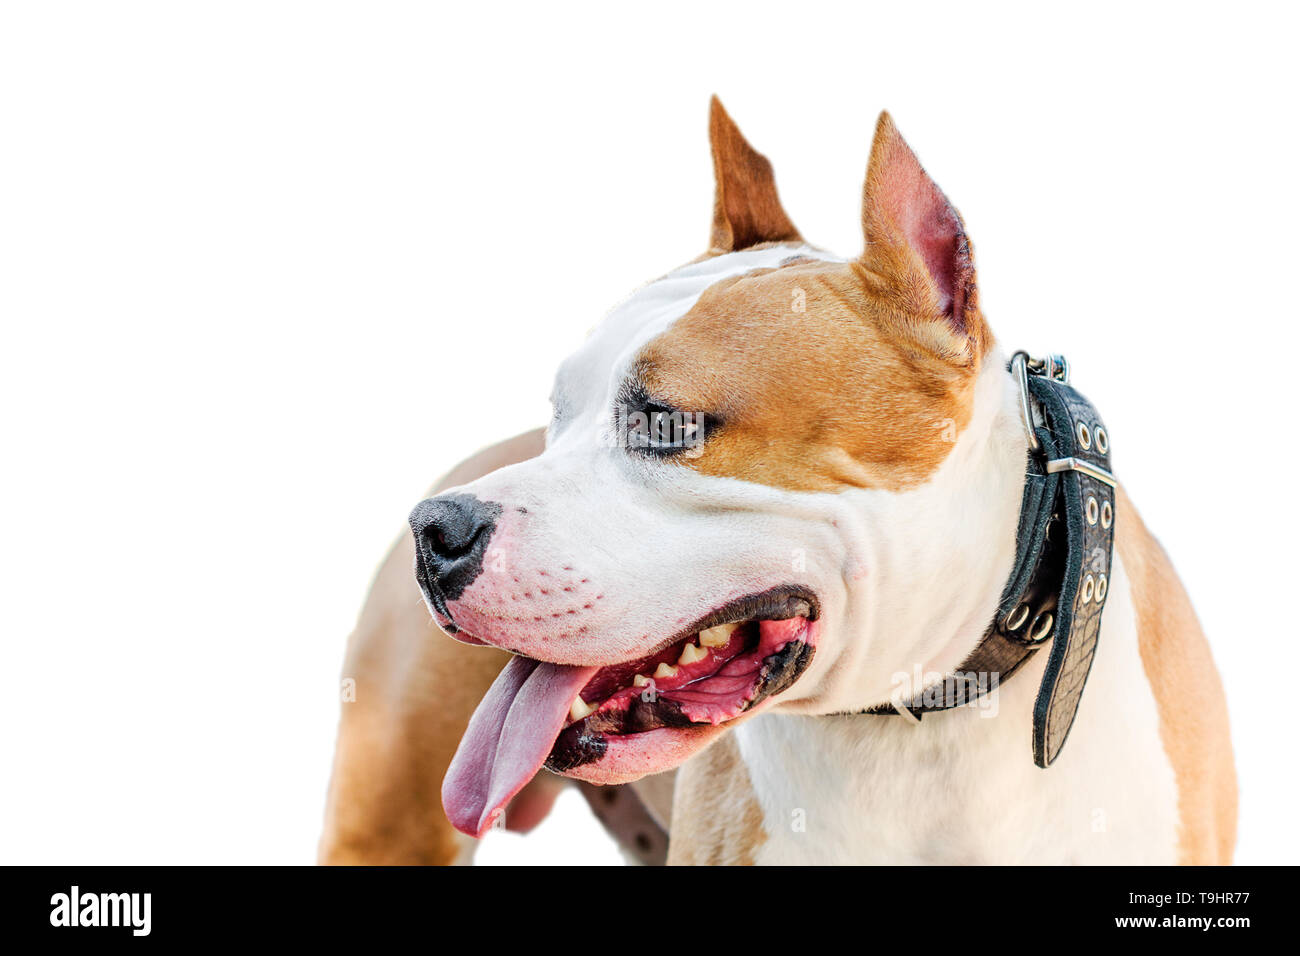 American Staffordshire terrier closeup portrait on white background isolate Stock Photo